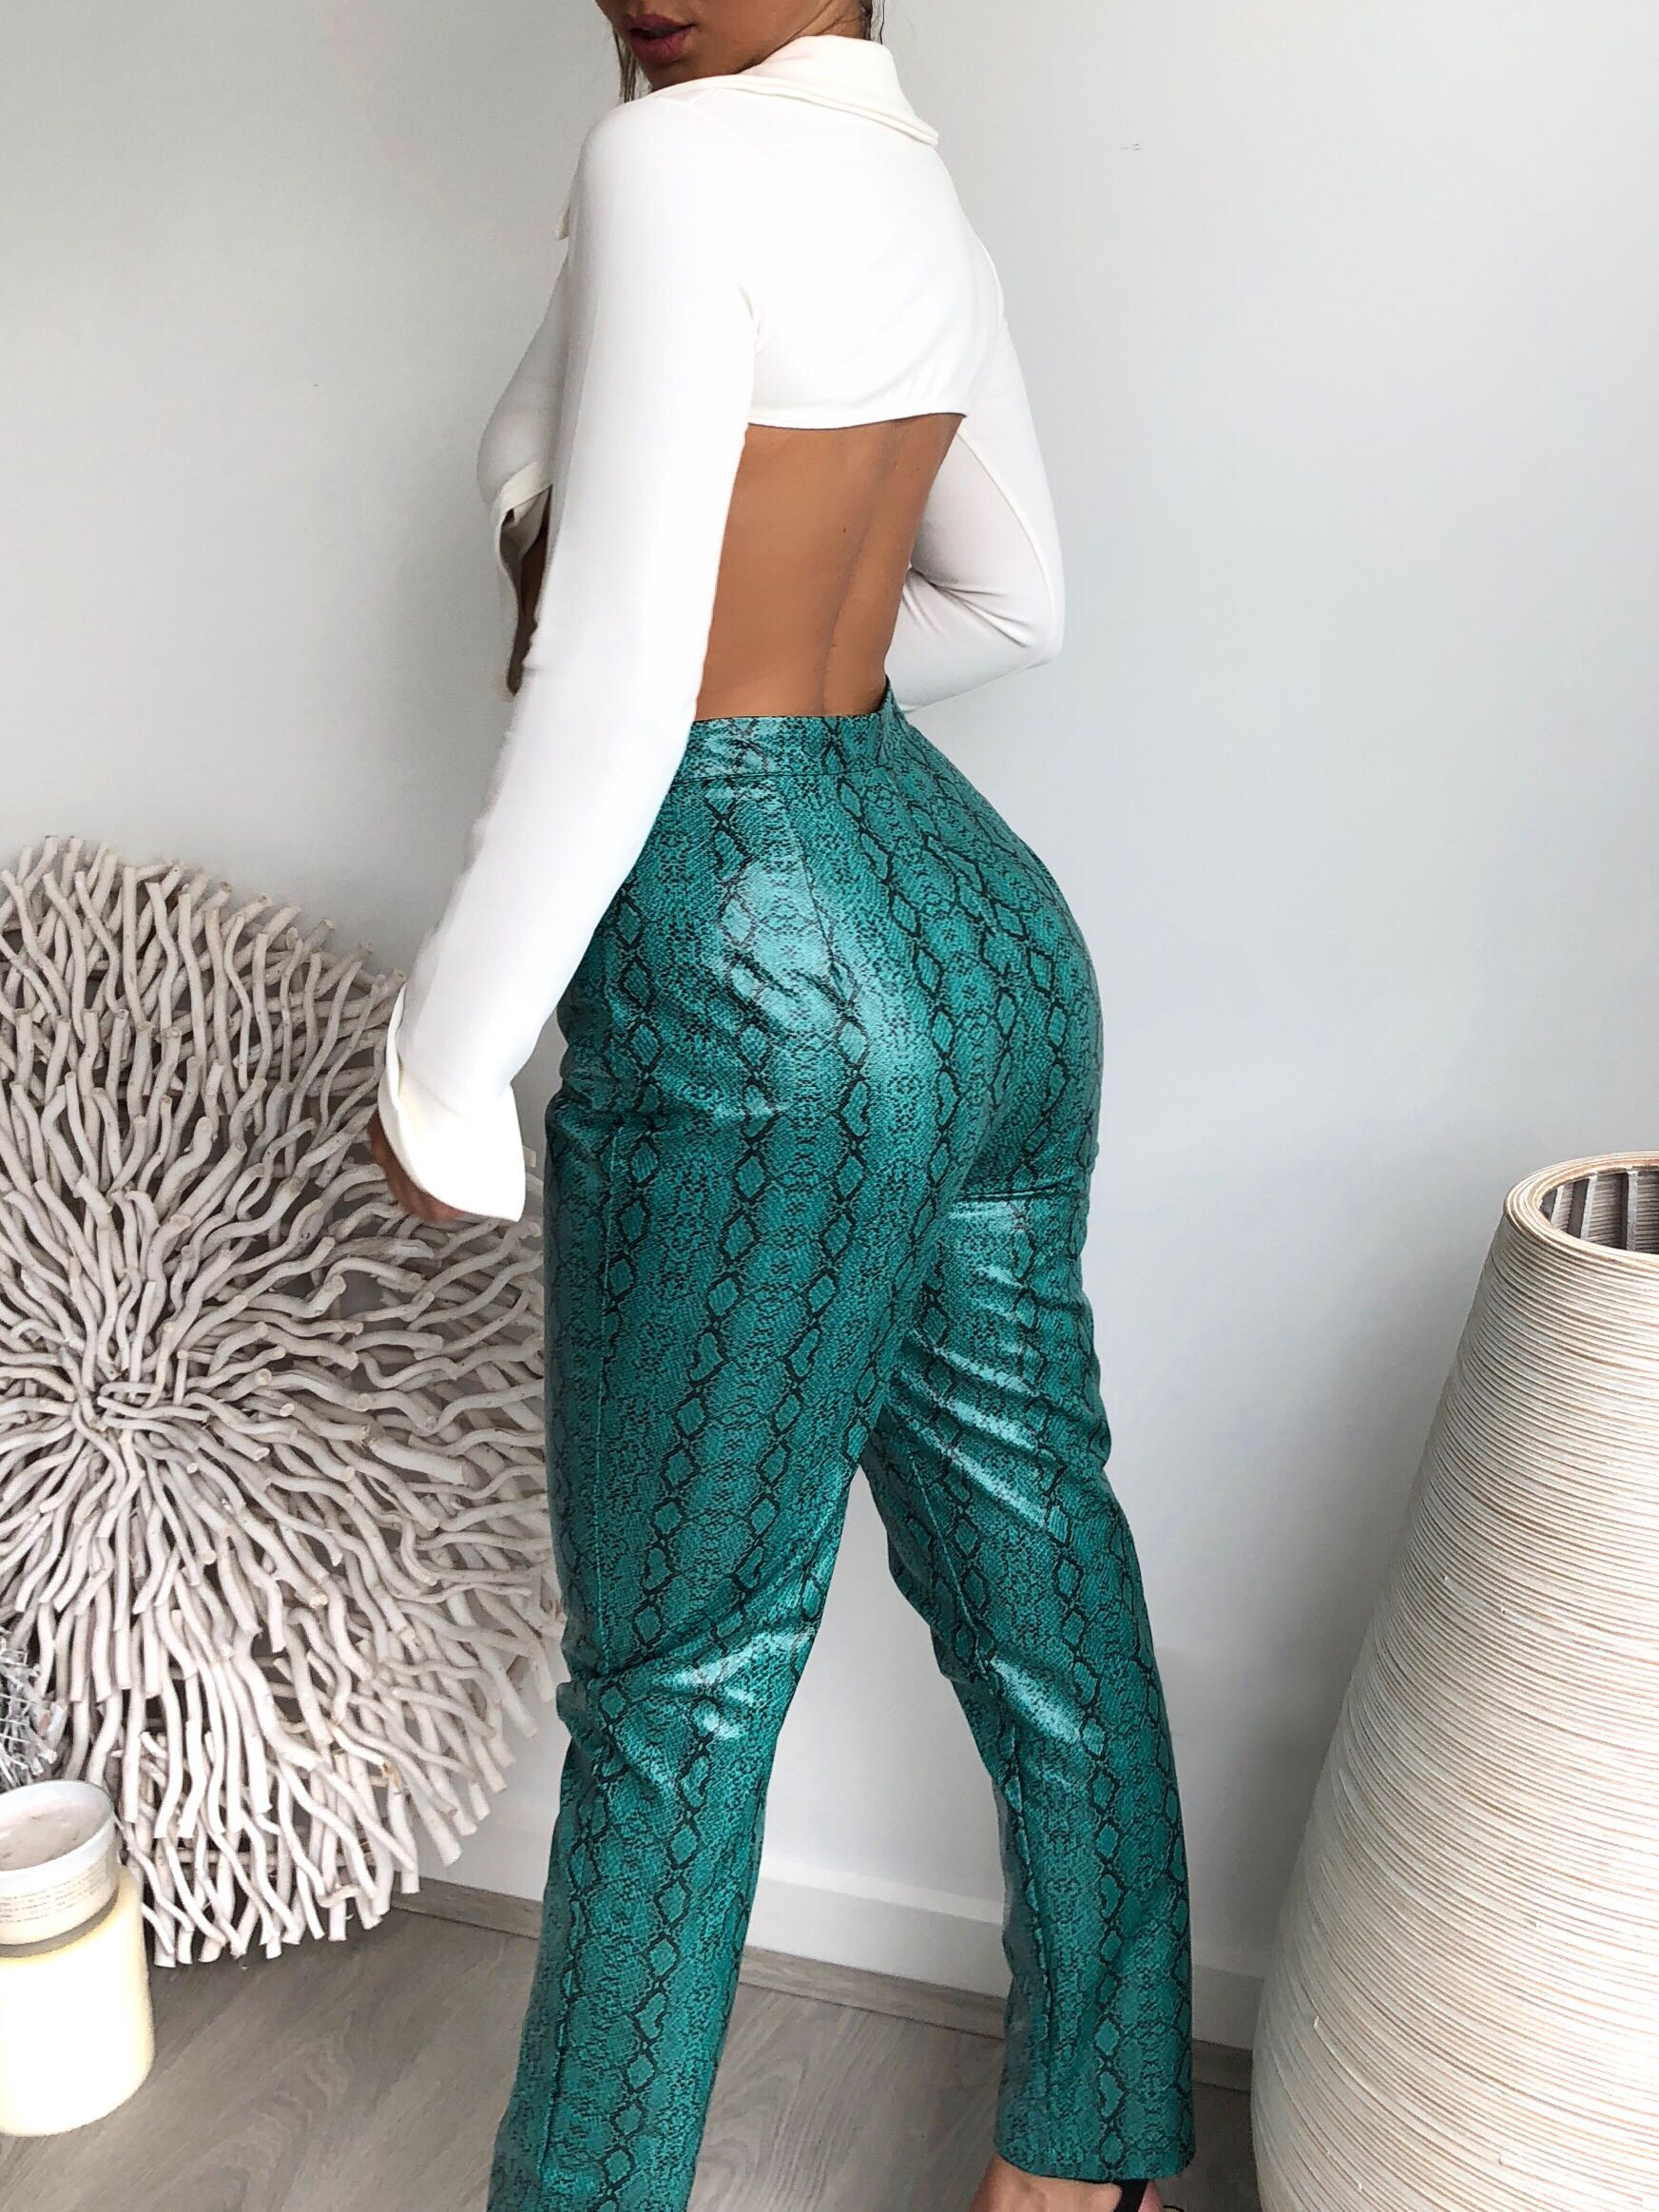 PRETTY LITTLE THING JADE GREEN FAUX LEATHER SNAKE PRINT SLIM LEG TROUSERS - SIZE 10